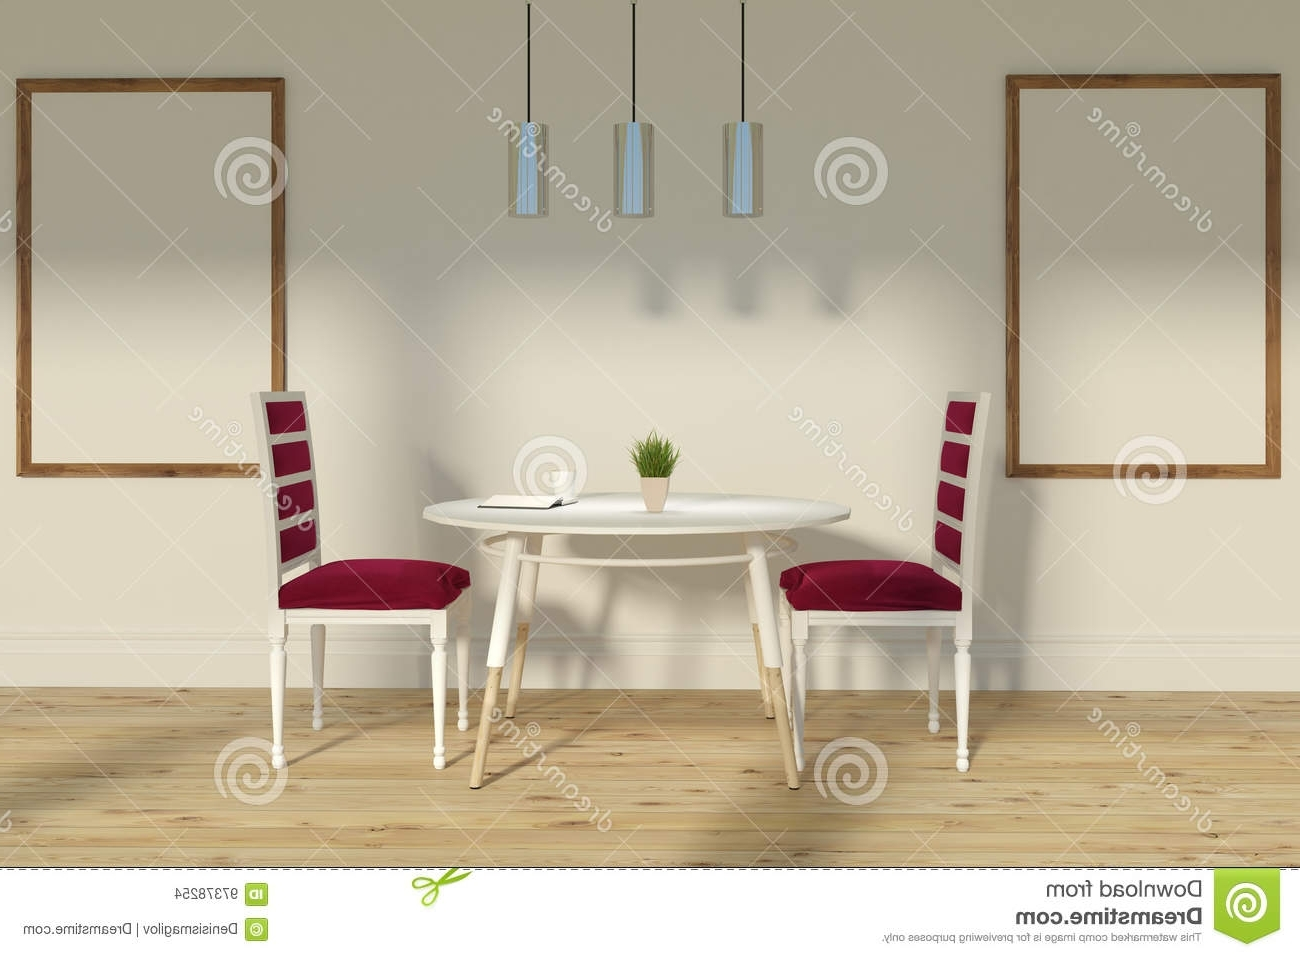 Dining Tables And Chairs For Two In Trendy Red Chairs Dining Room, Two Posters Stock Illustration (View 5 of 25)